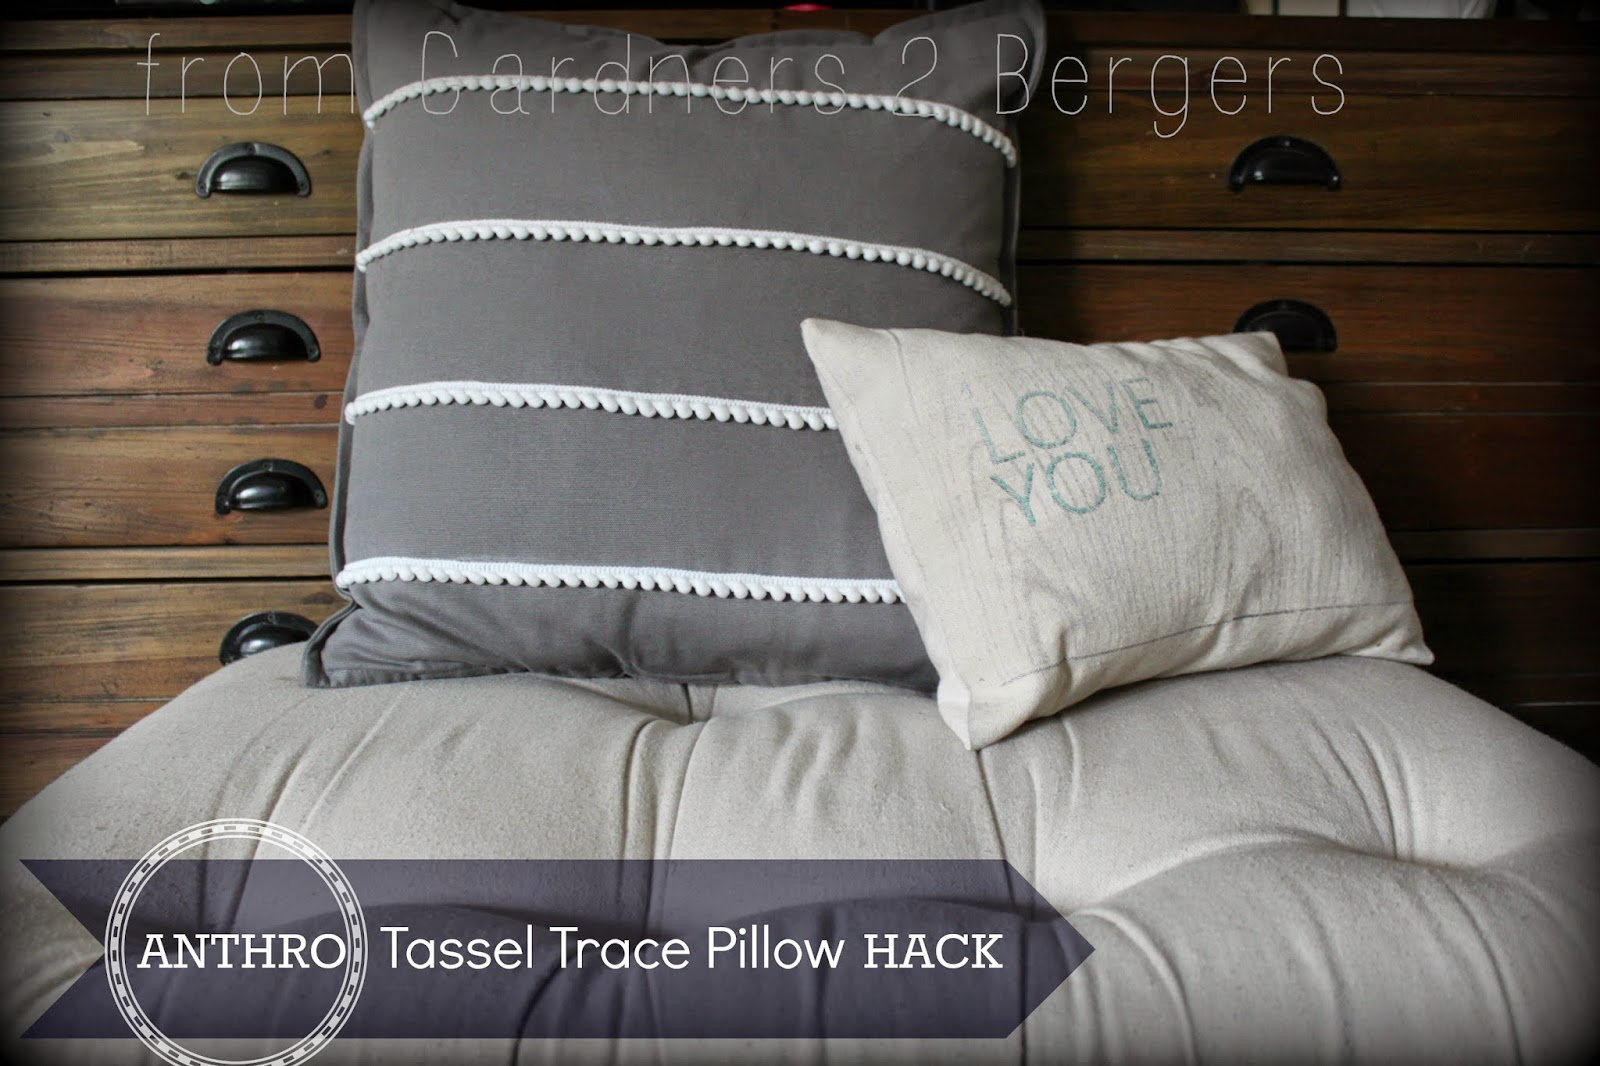 Anthro-Tassel-Trace-Pillow-Hack